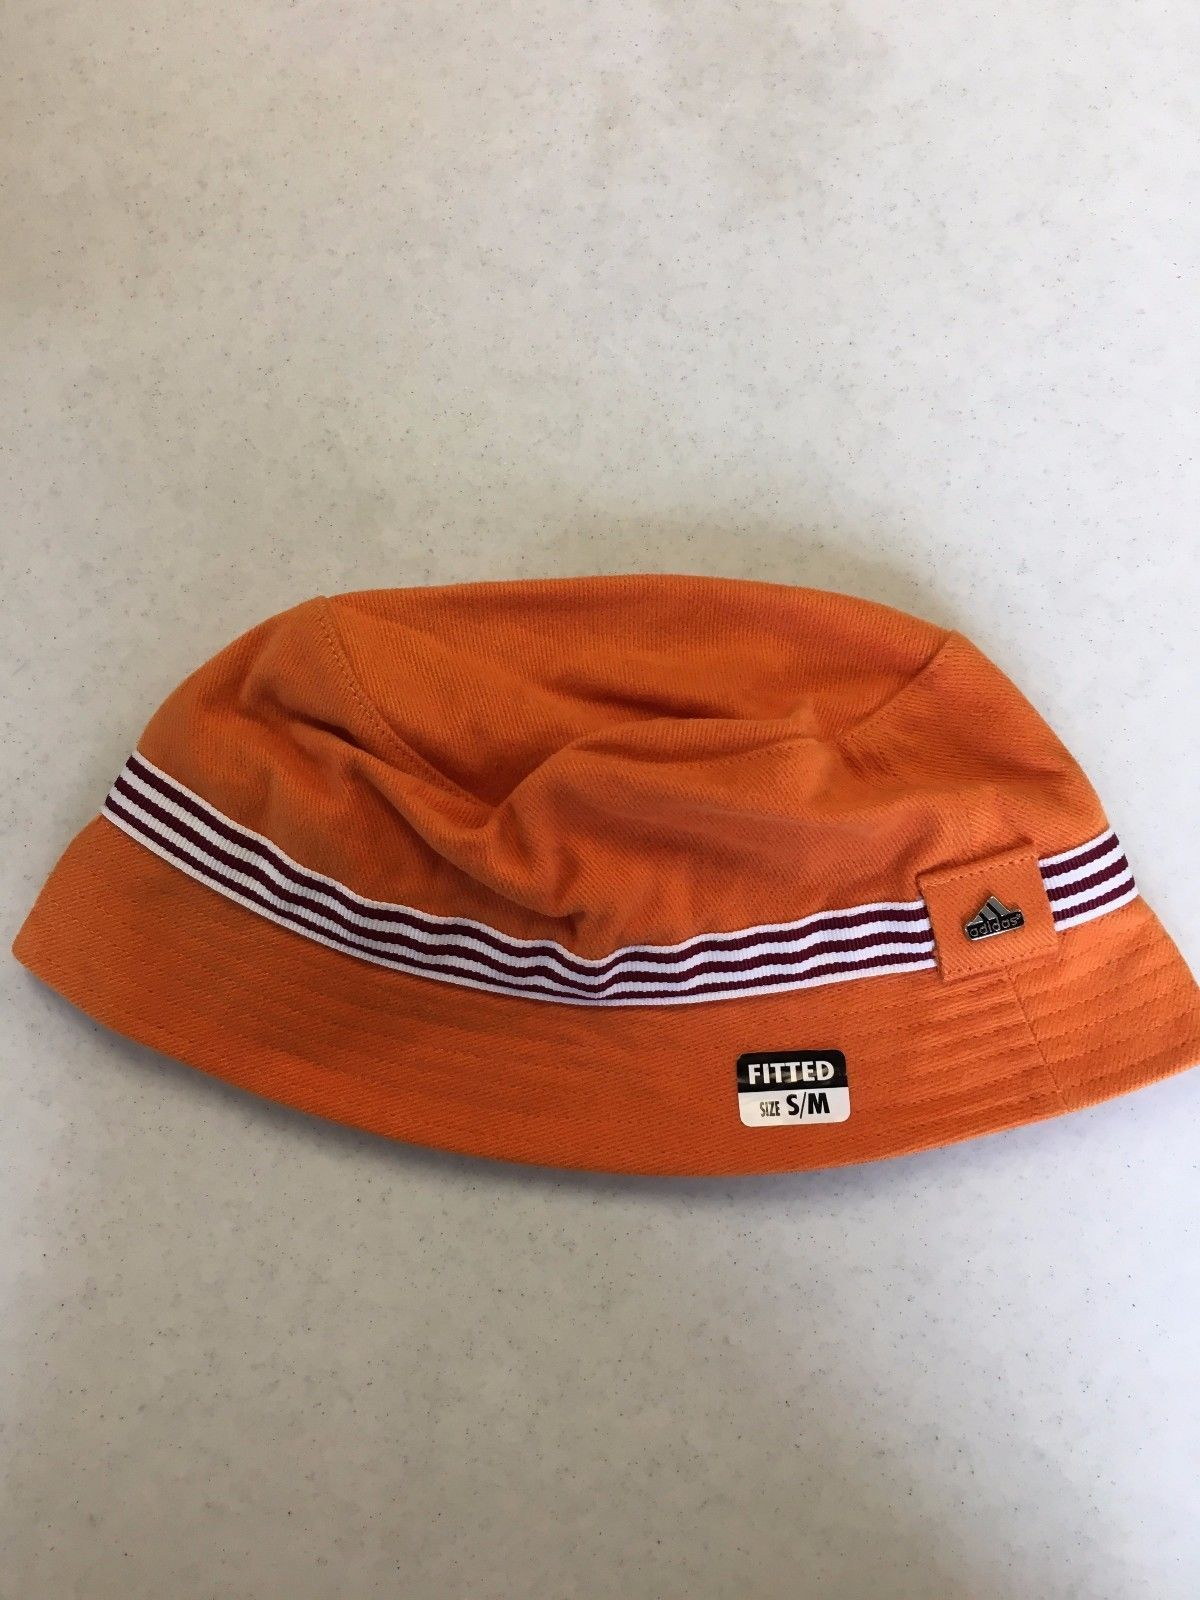 b0aba8c2d52 Brand new adidas women s orange bucket hat small medium shipping ...